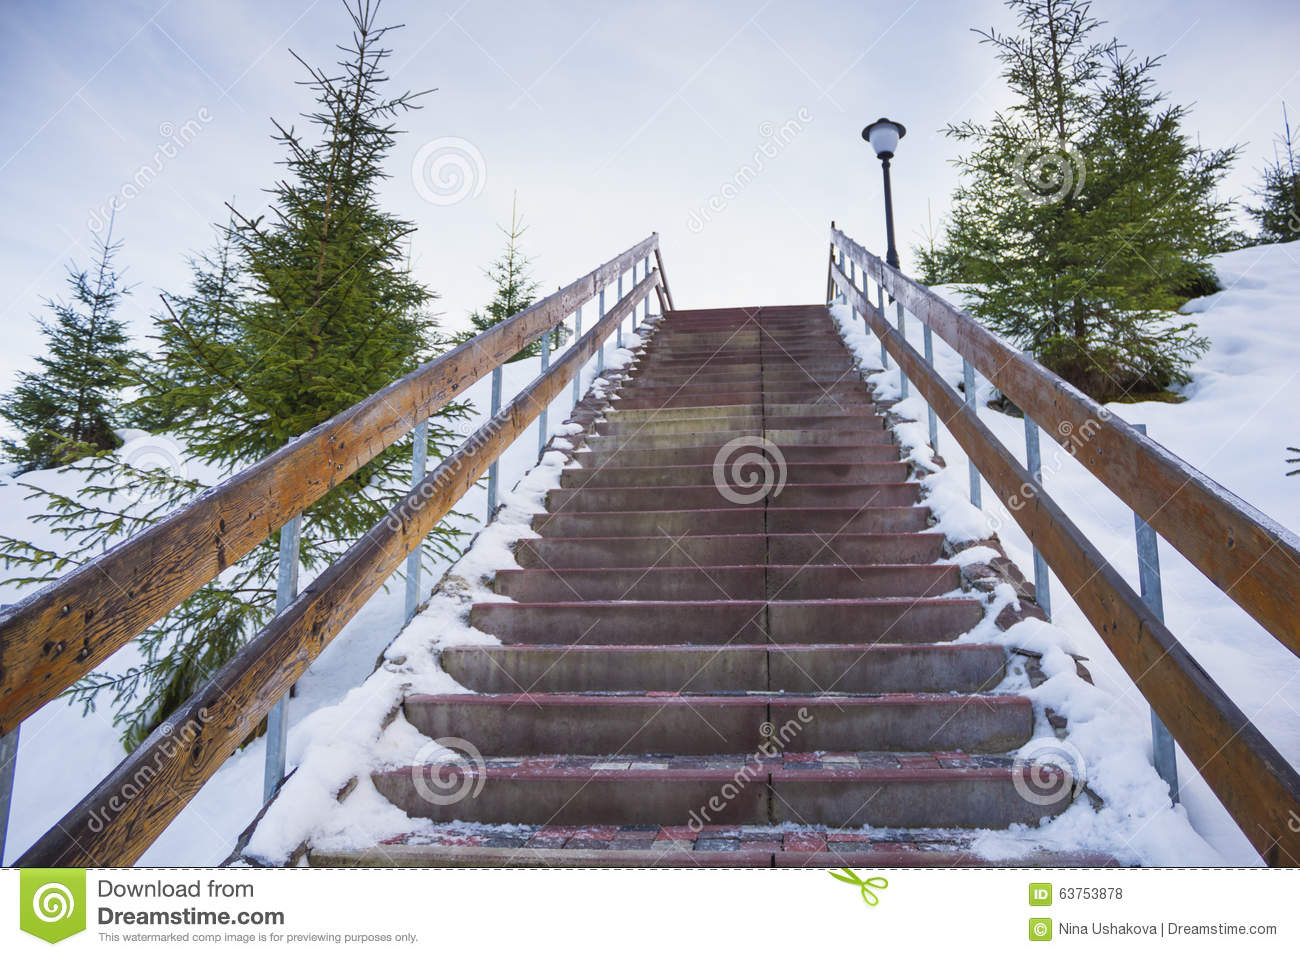 Snow-covered stairway to heaven